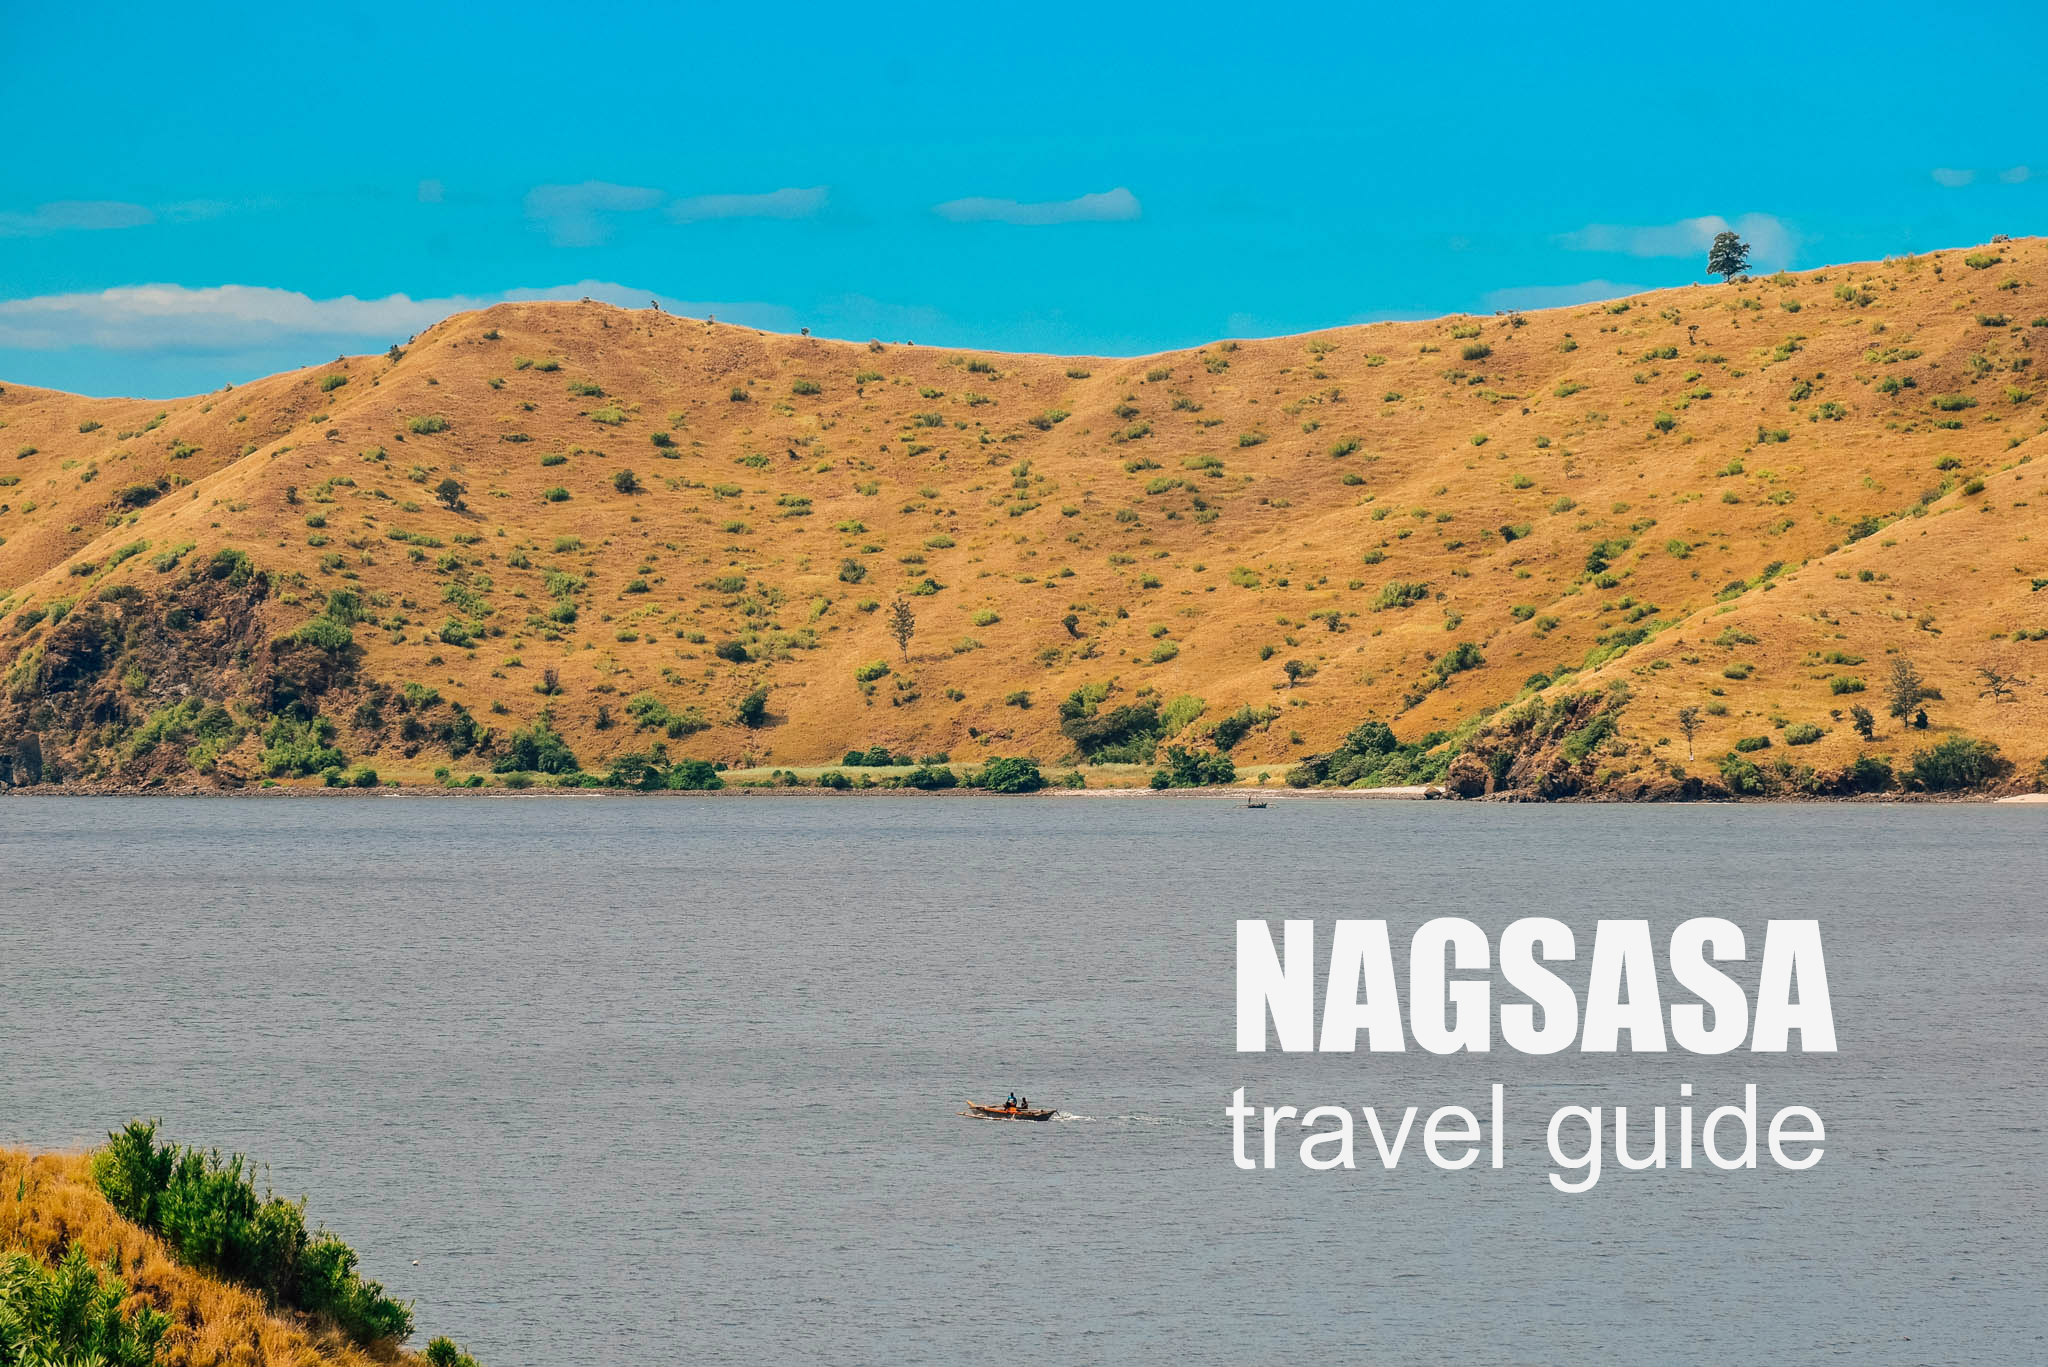 NAGSASA COVE Travel Guide Blog (Budget + Itinerary)